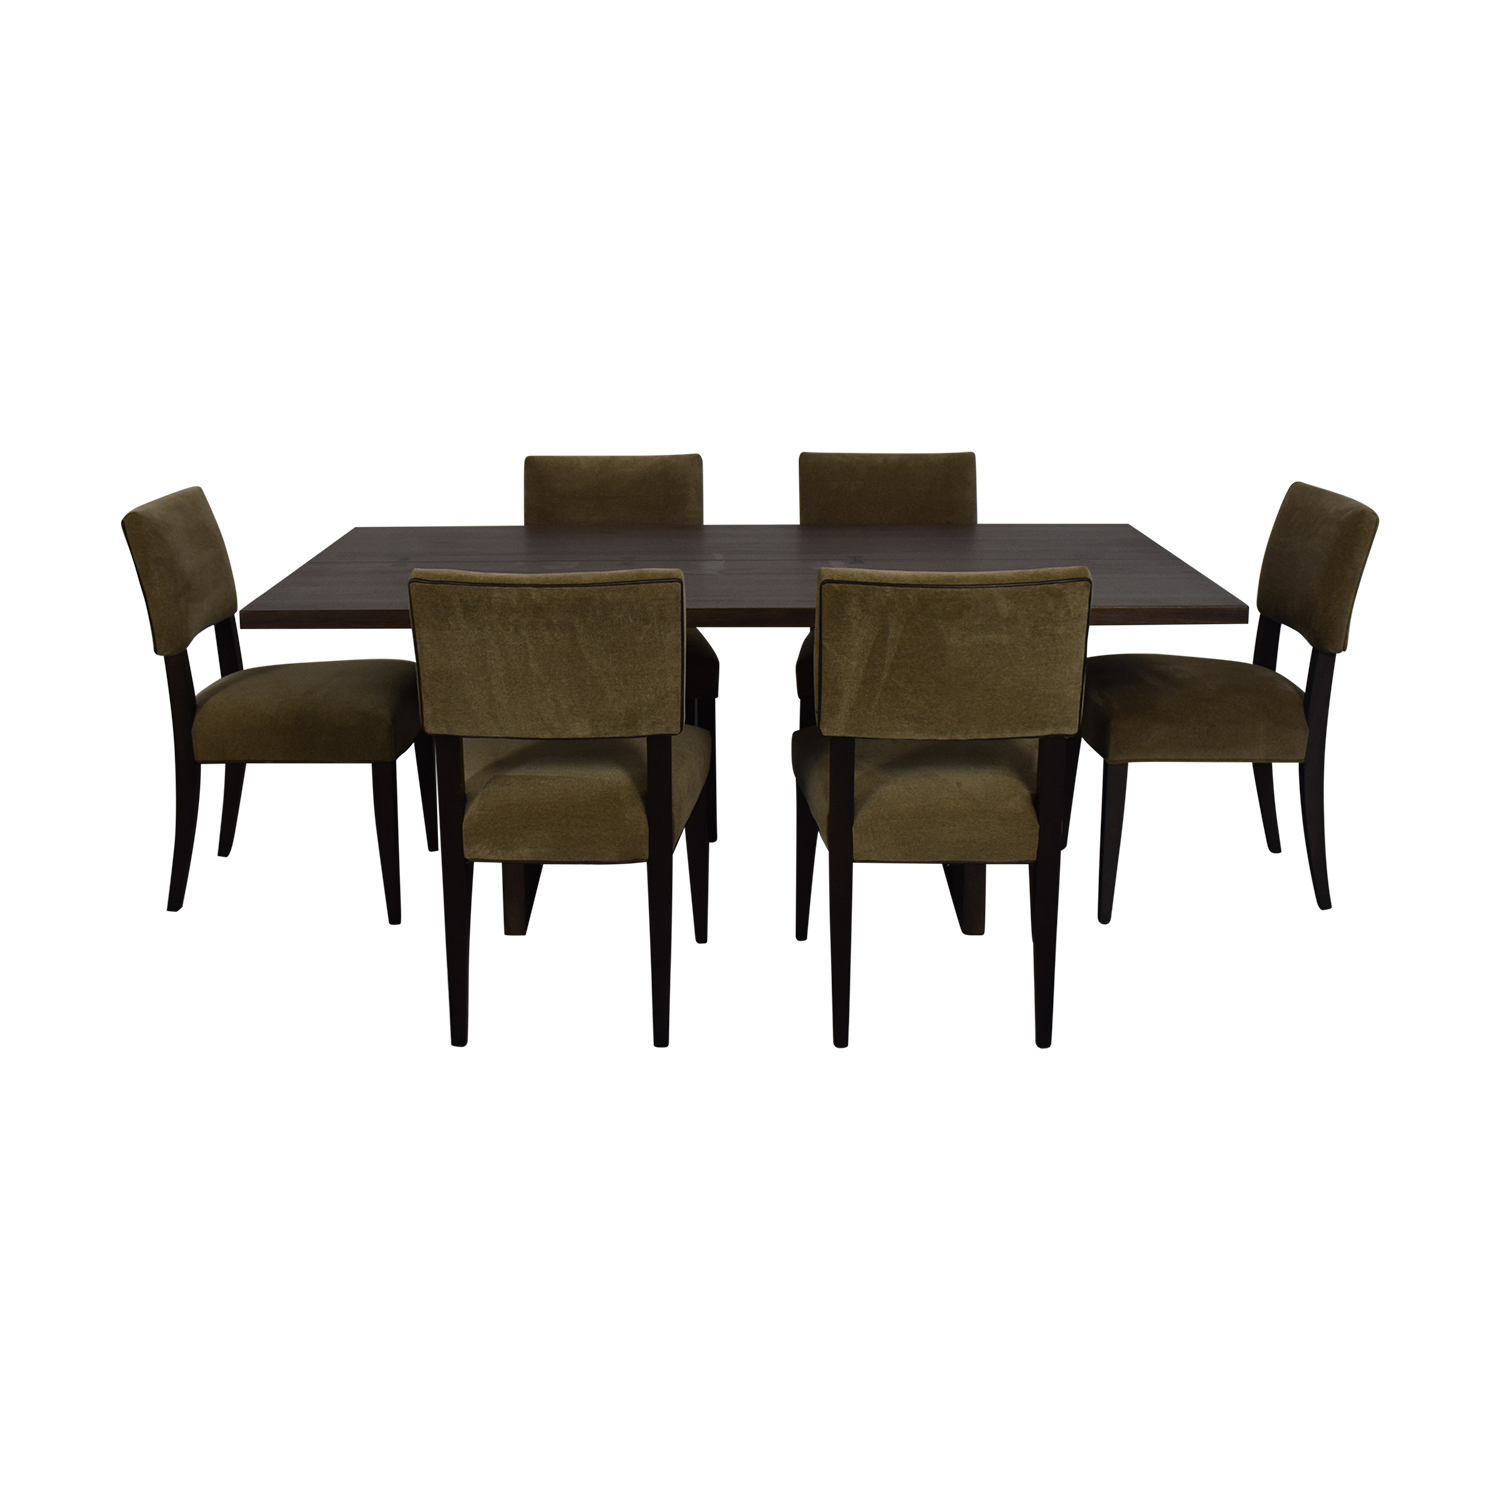 Crate & Barrel Crate & Barrel Monarch Dining Table and Cody Dining Chairs on sale